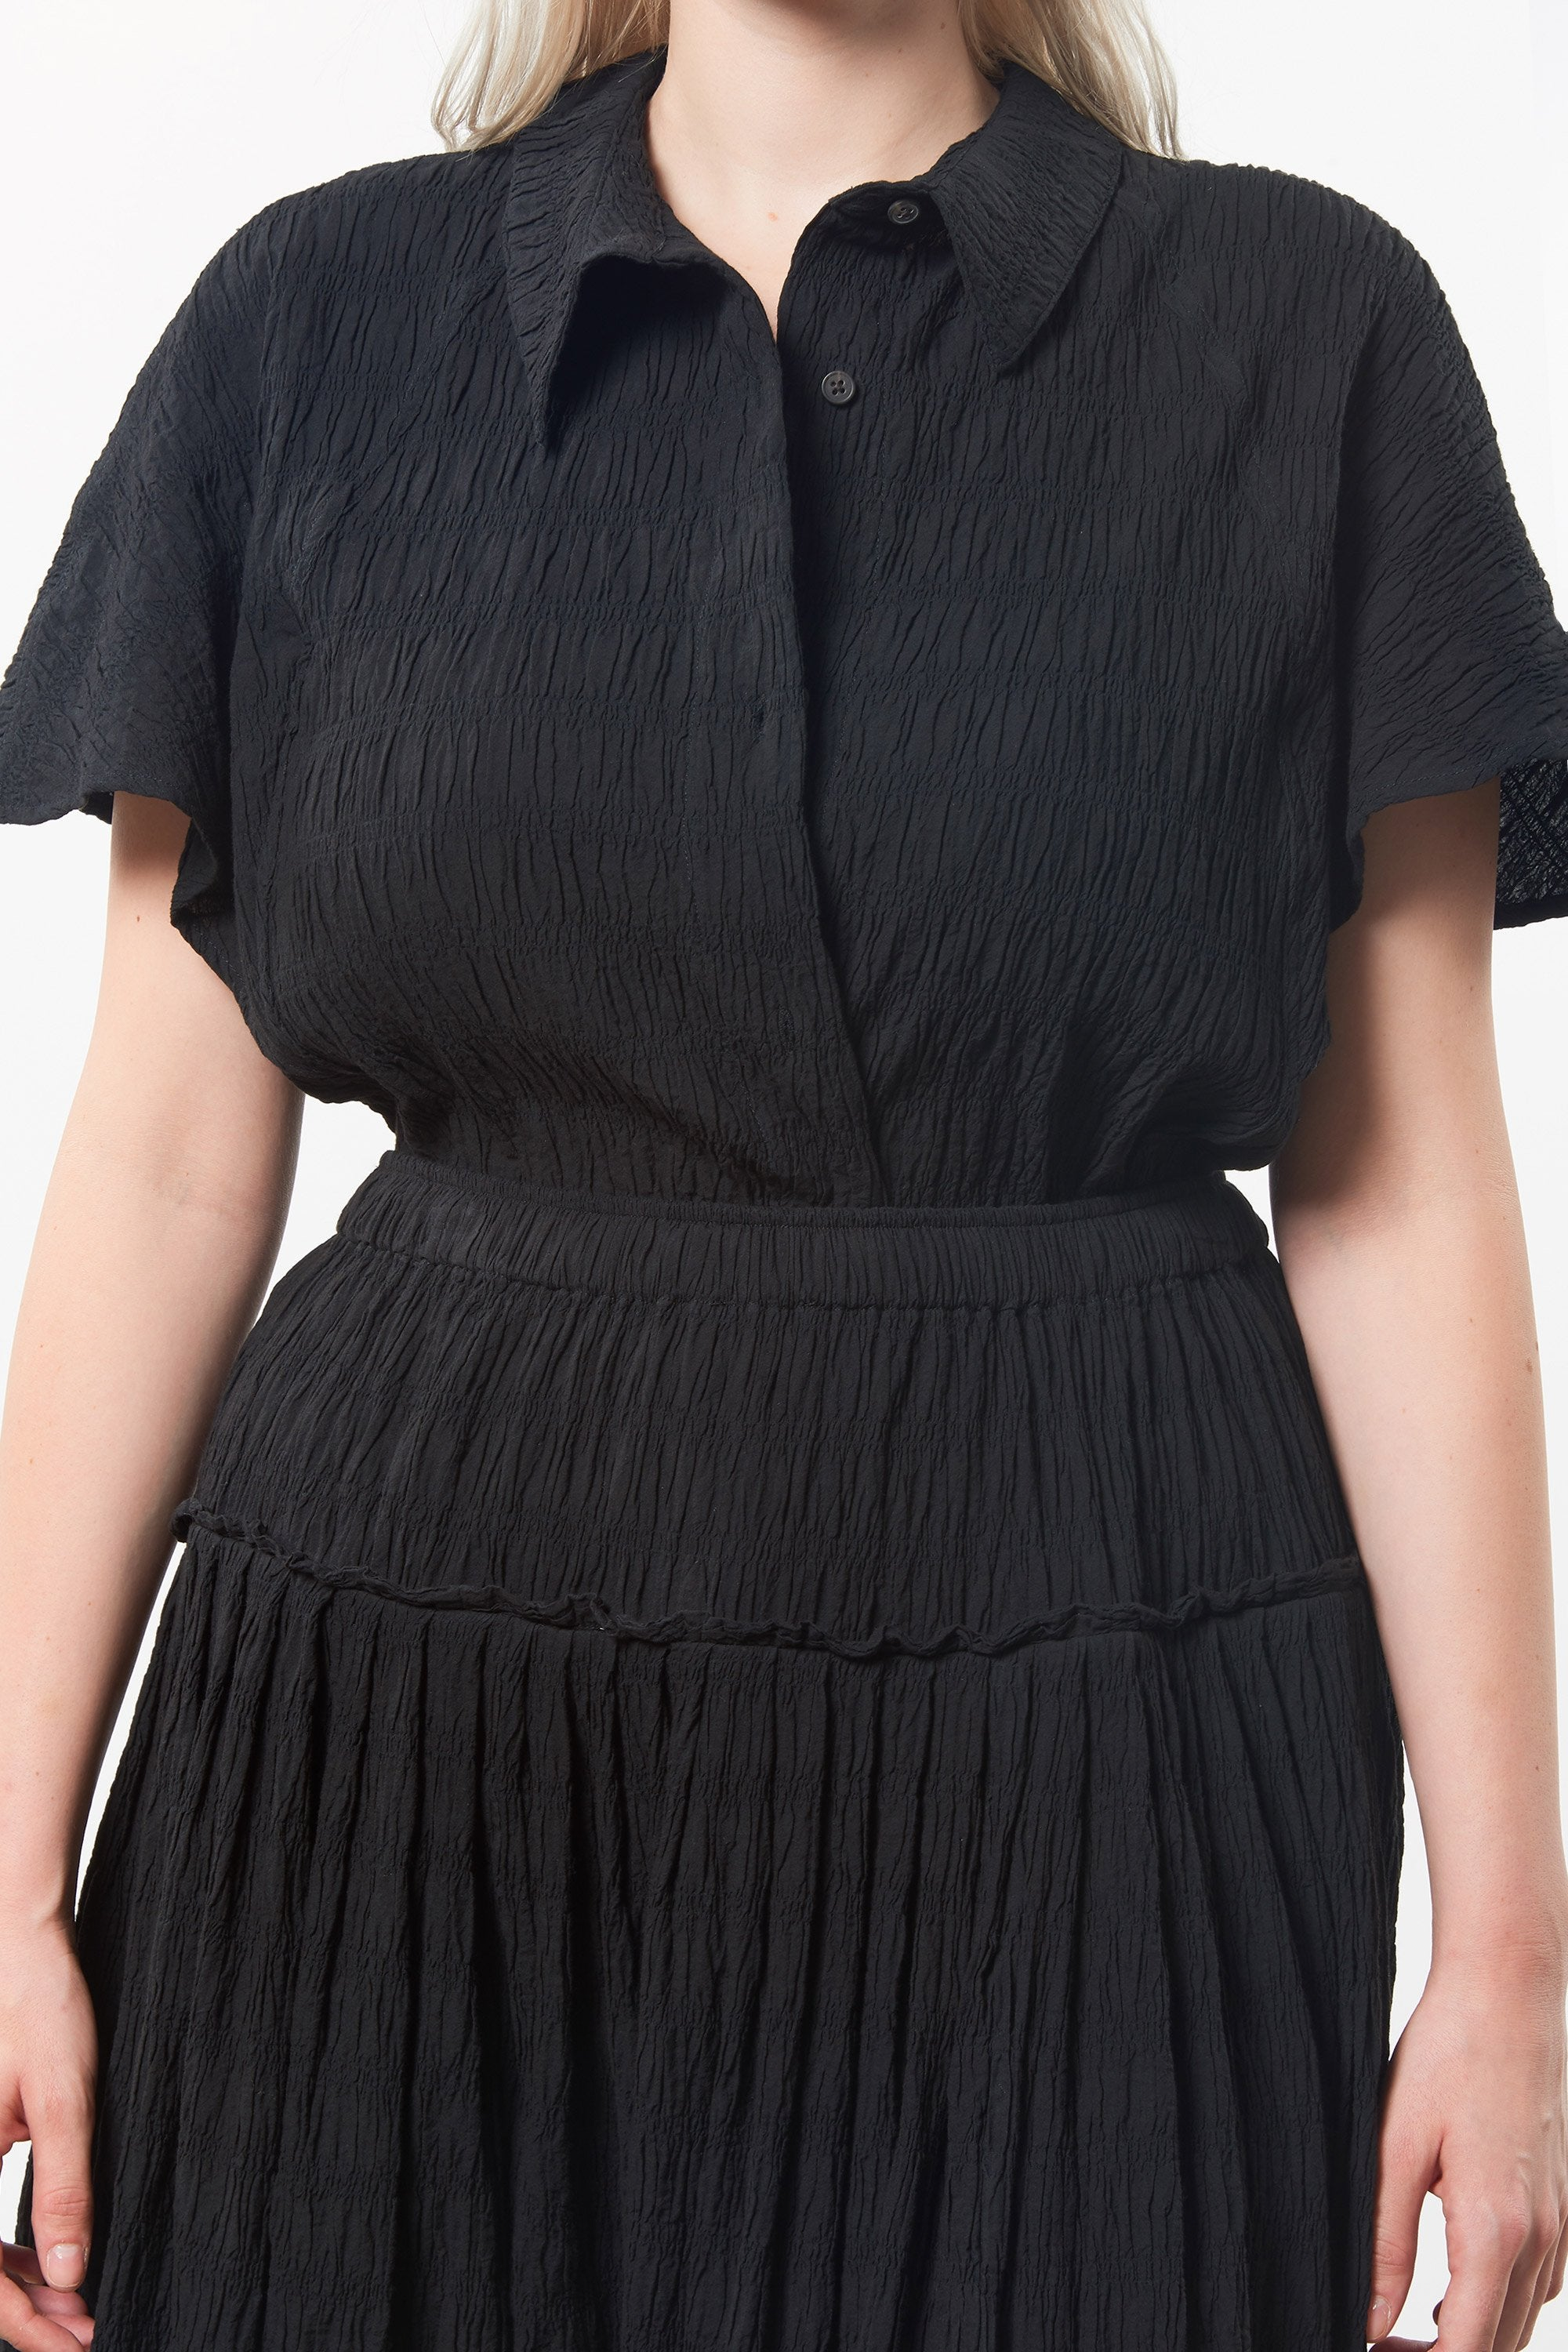 Extended Mara Hoffman Black Alejandra Skirt in organic cotton (detail)